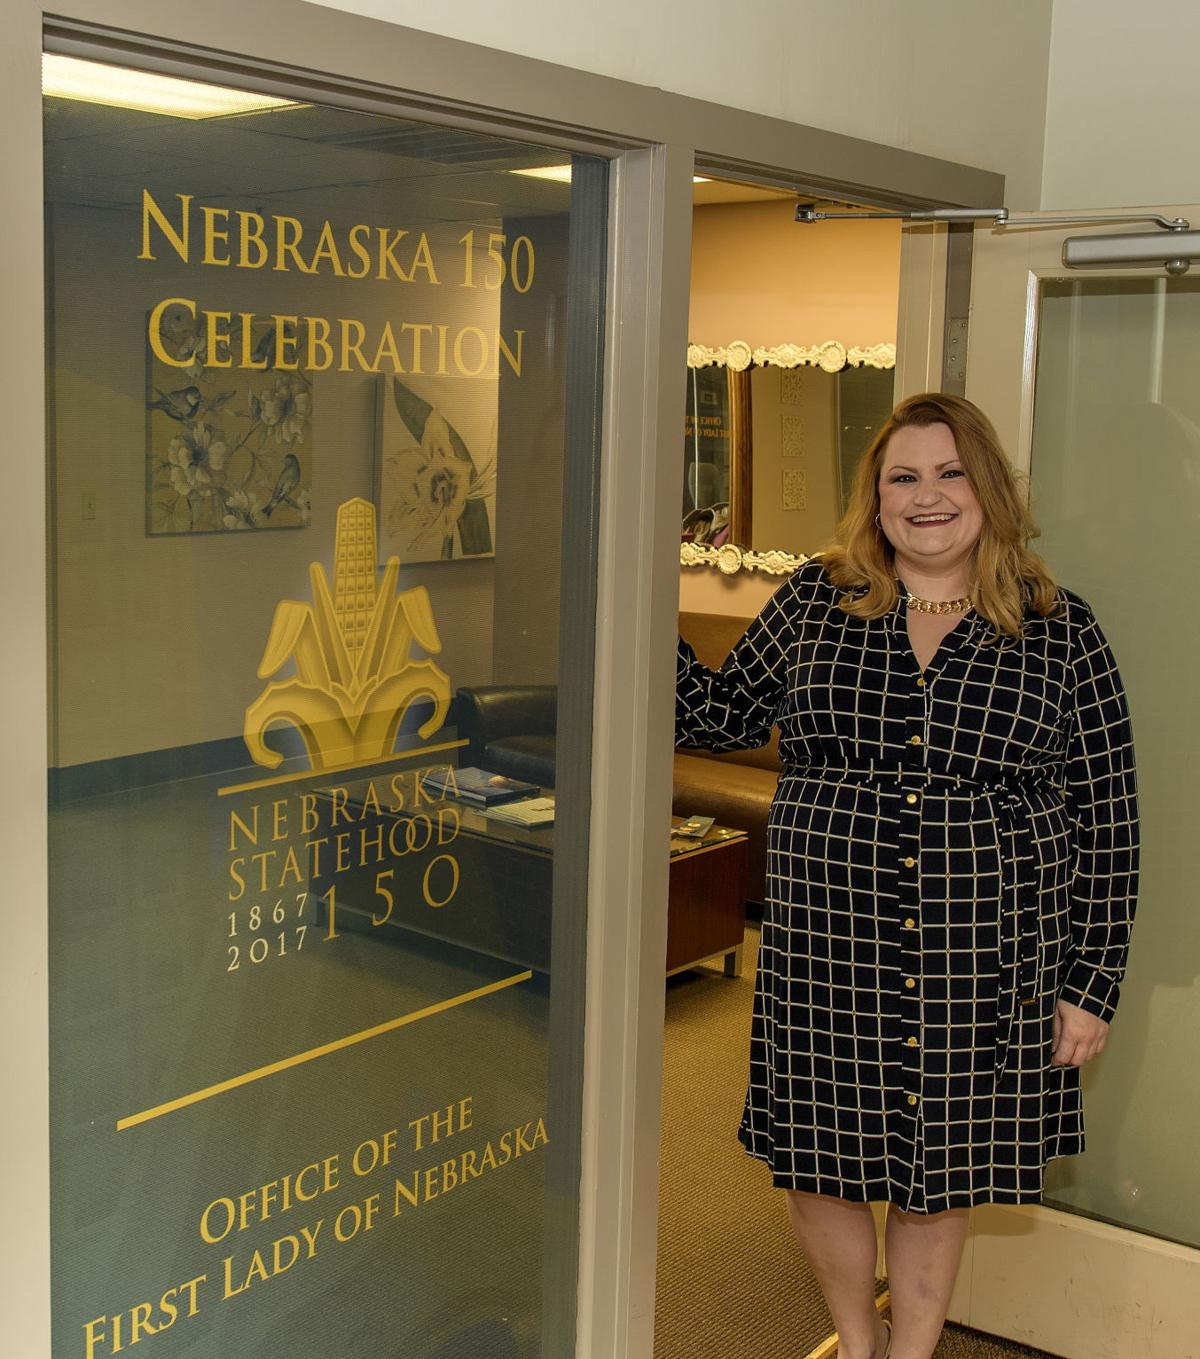 Regan Anson, Nebraska 150 Celebration executive director